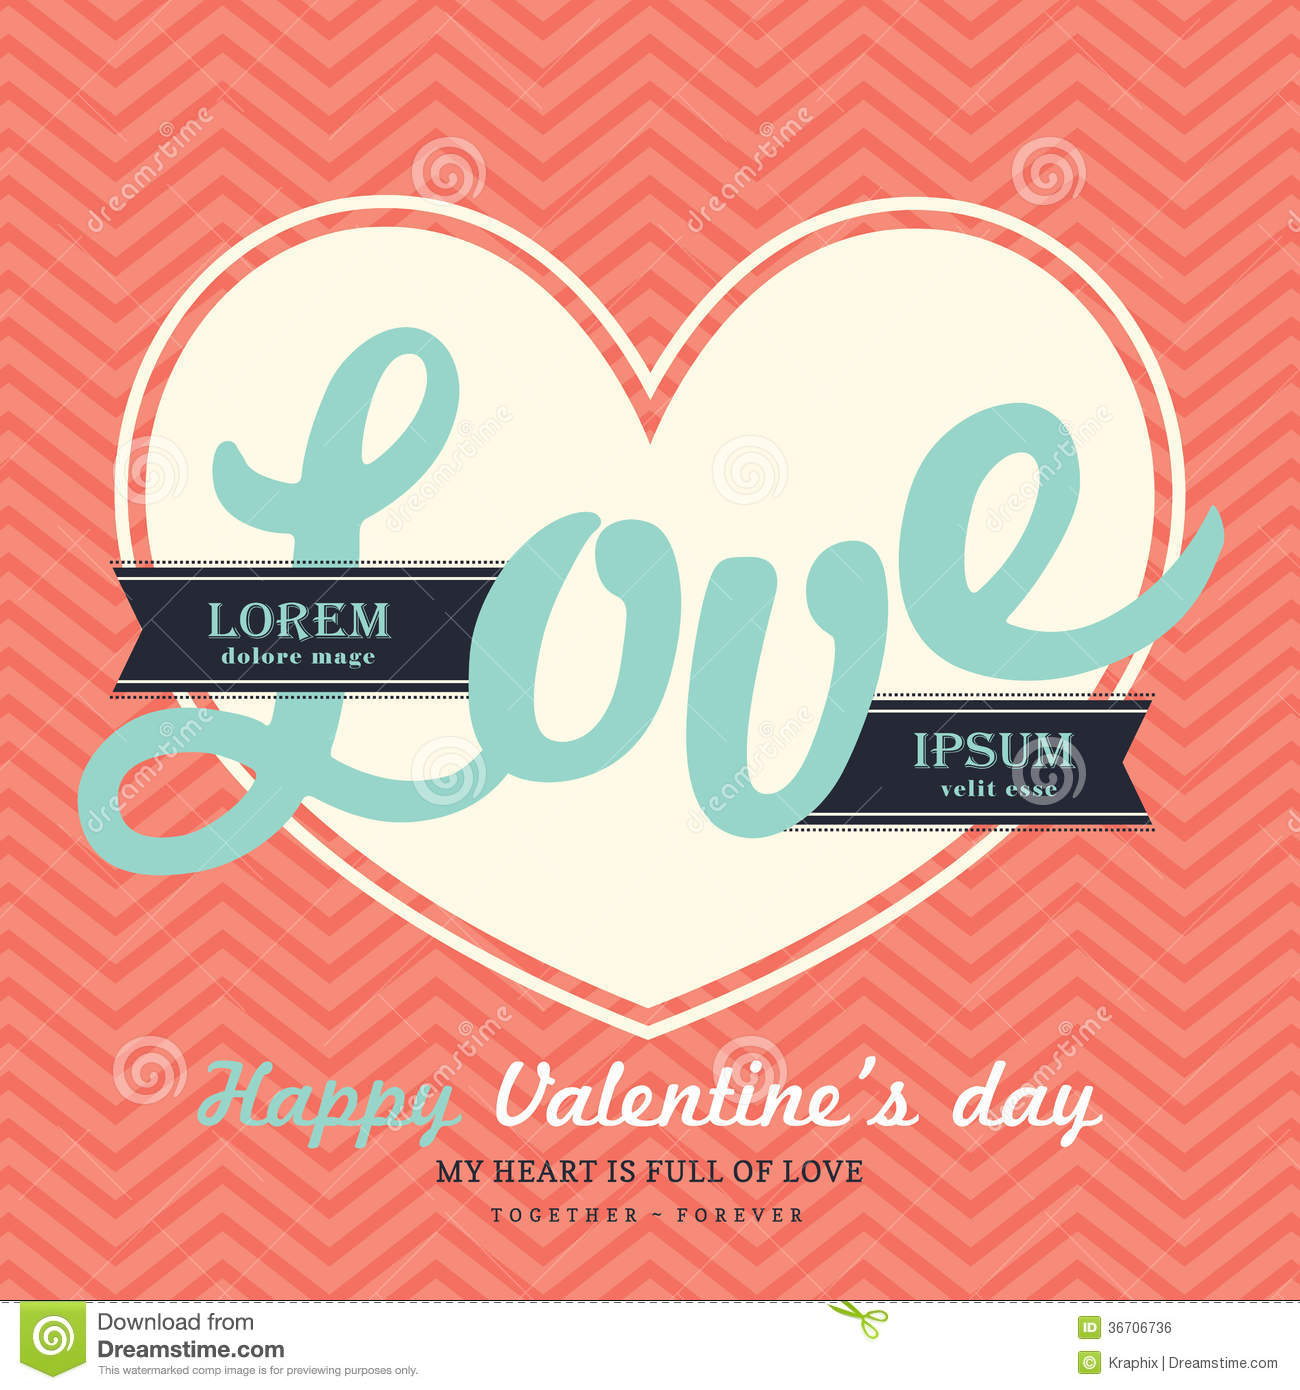 Valentine S Day Invitation Card Template With Love Stock Vector